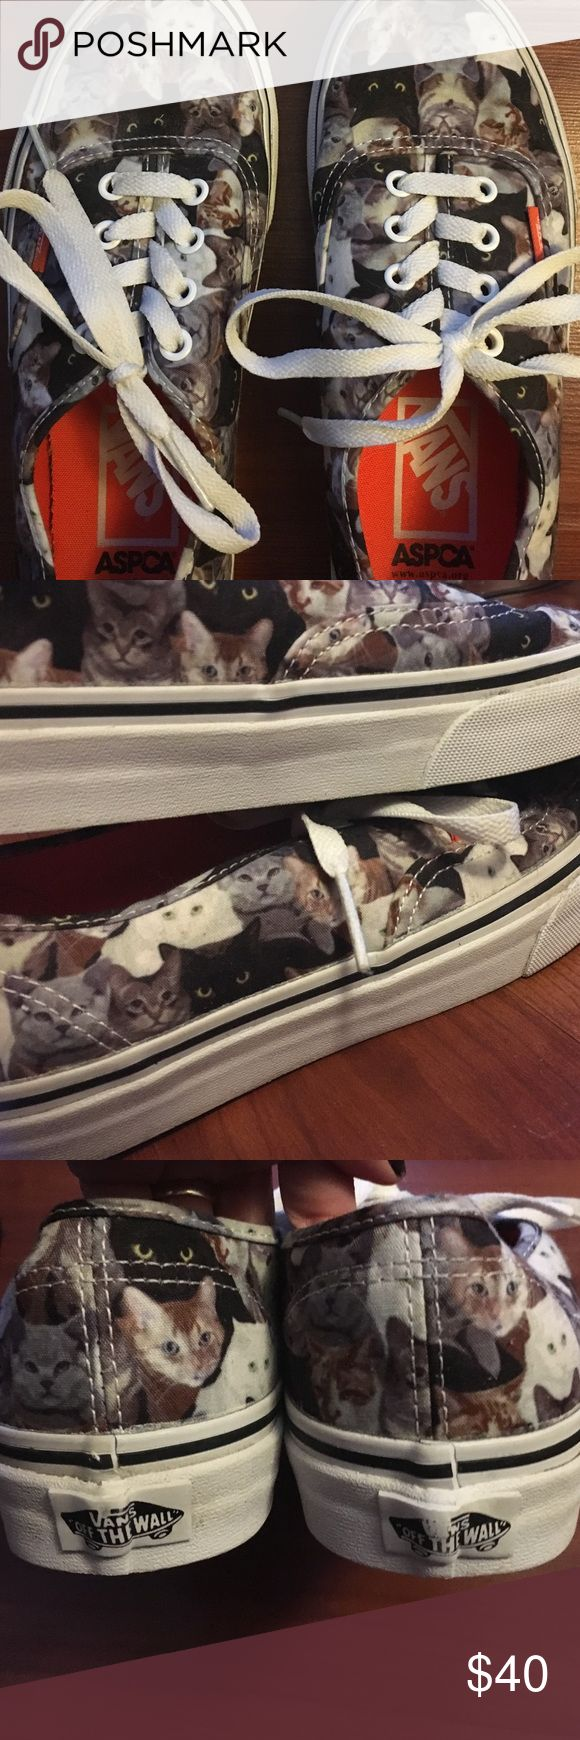 Cat Vans 😸 Adorable vans x aspca womens size 7! Only ever worn once for a few hours and the only sign of wear is a little of the logo rubbing off the back, the sides are still as white as can be and the bottoms are clean :) Rare to find, sold out everywhere ive looked~ even on the vans website! Vans Shoes Sneakers